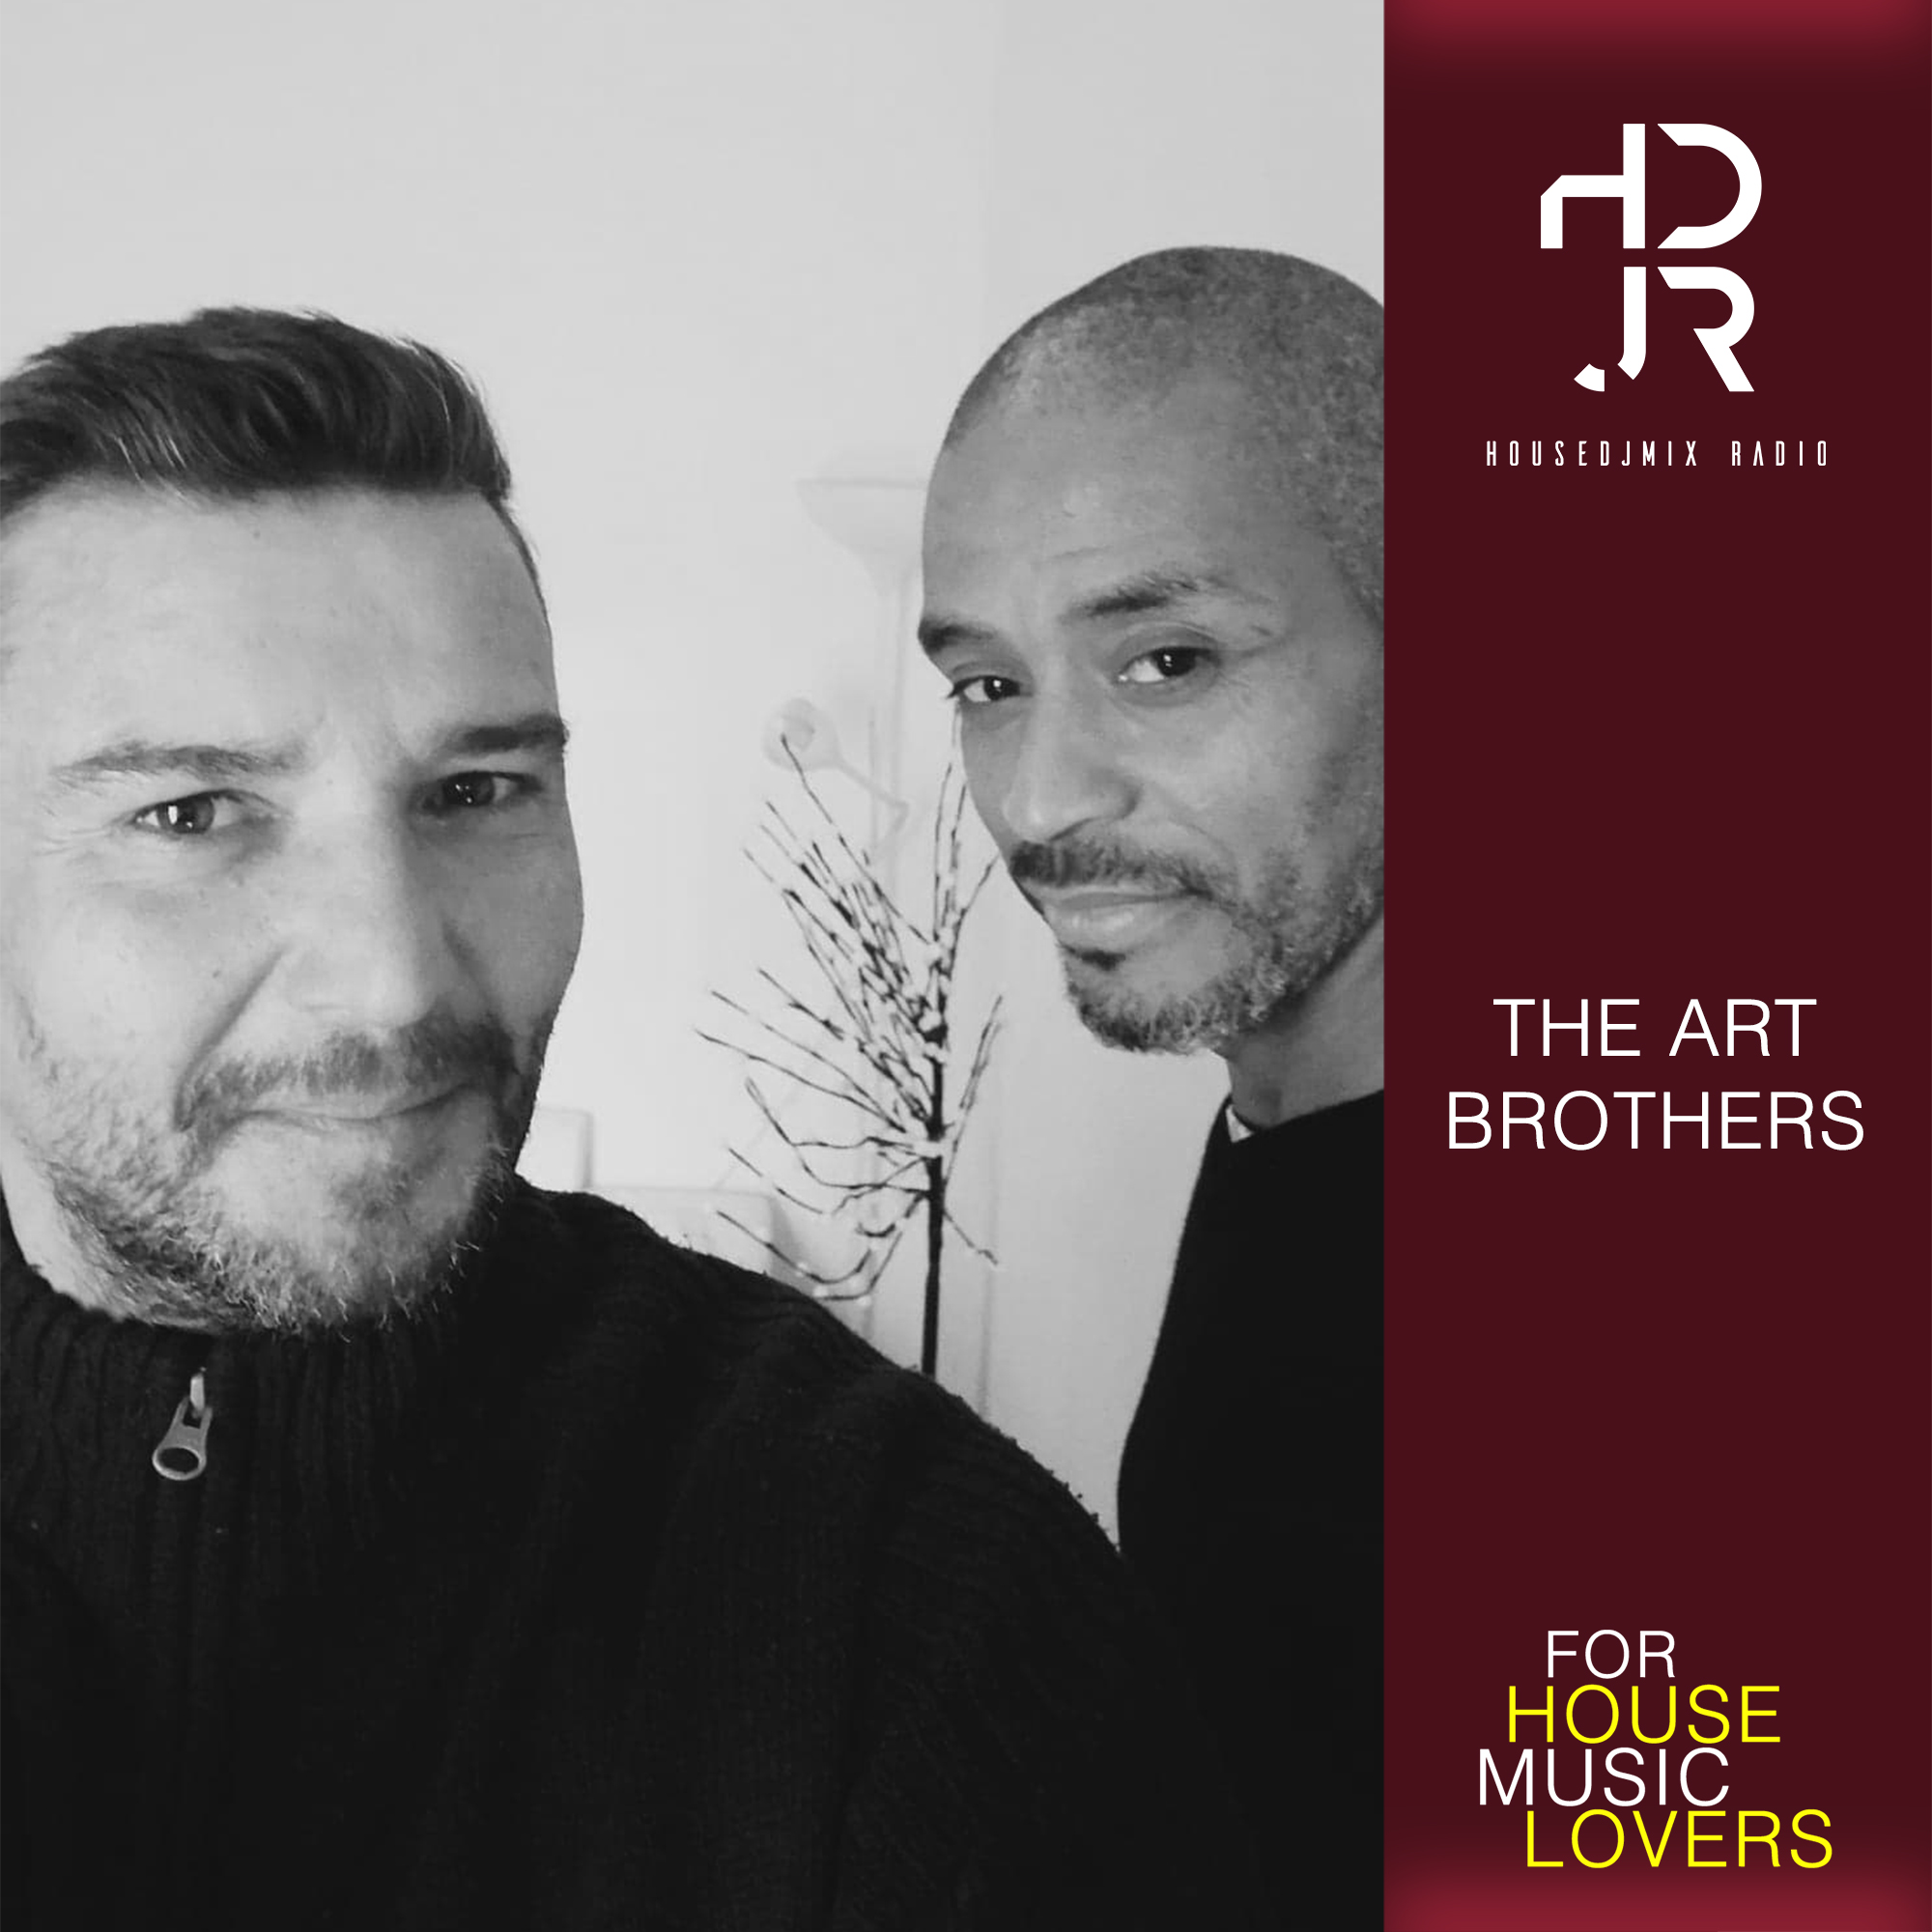 The Art Brothers